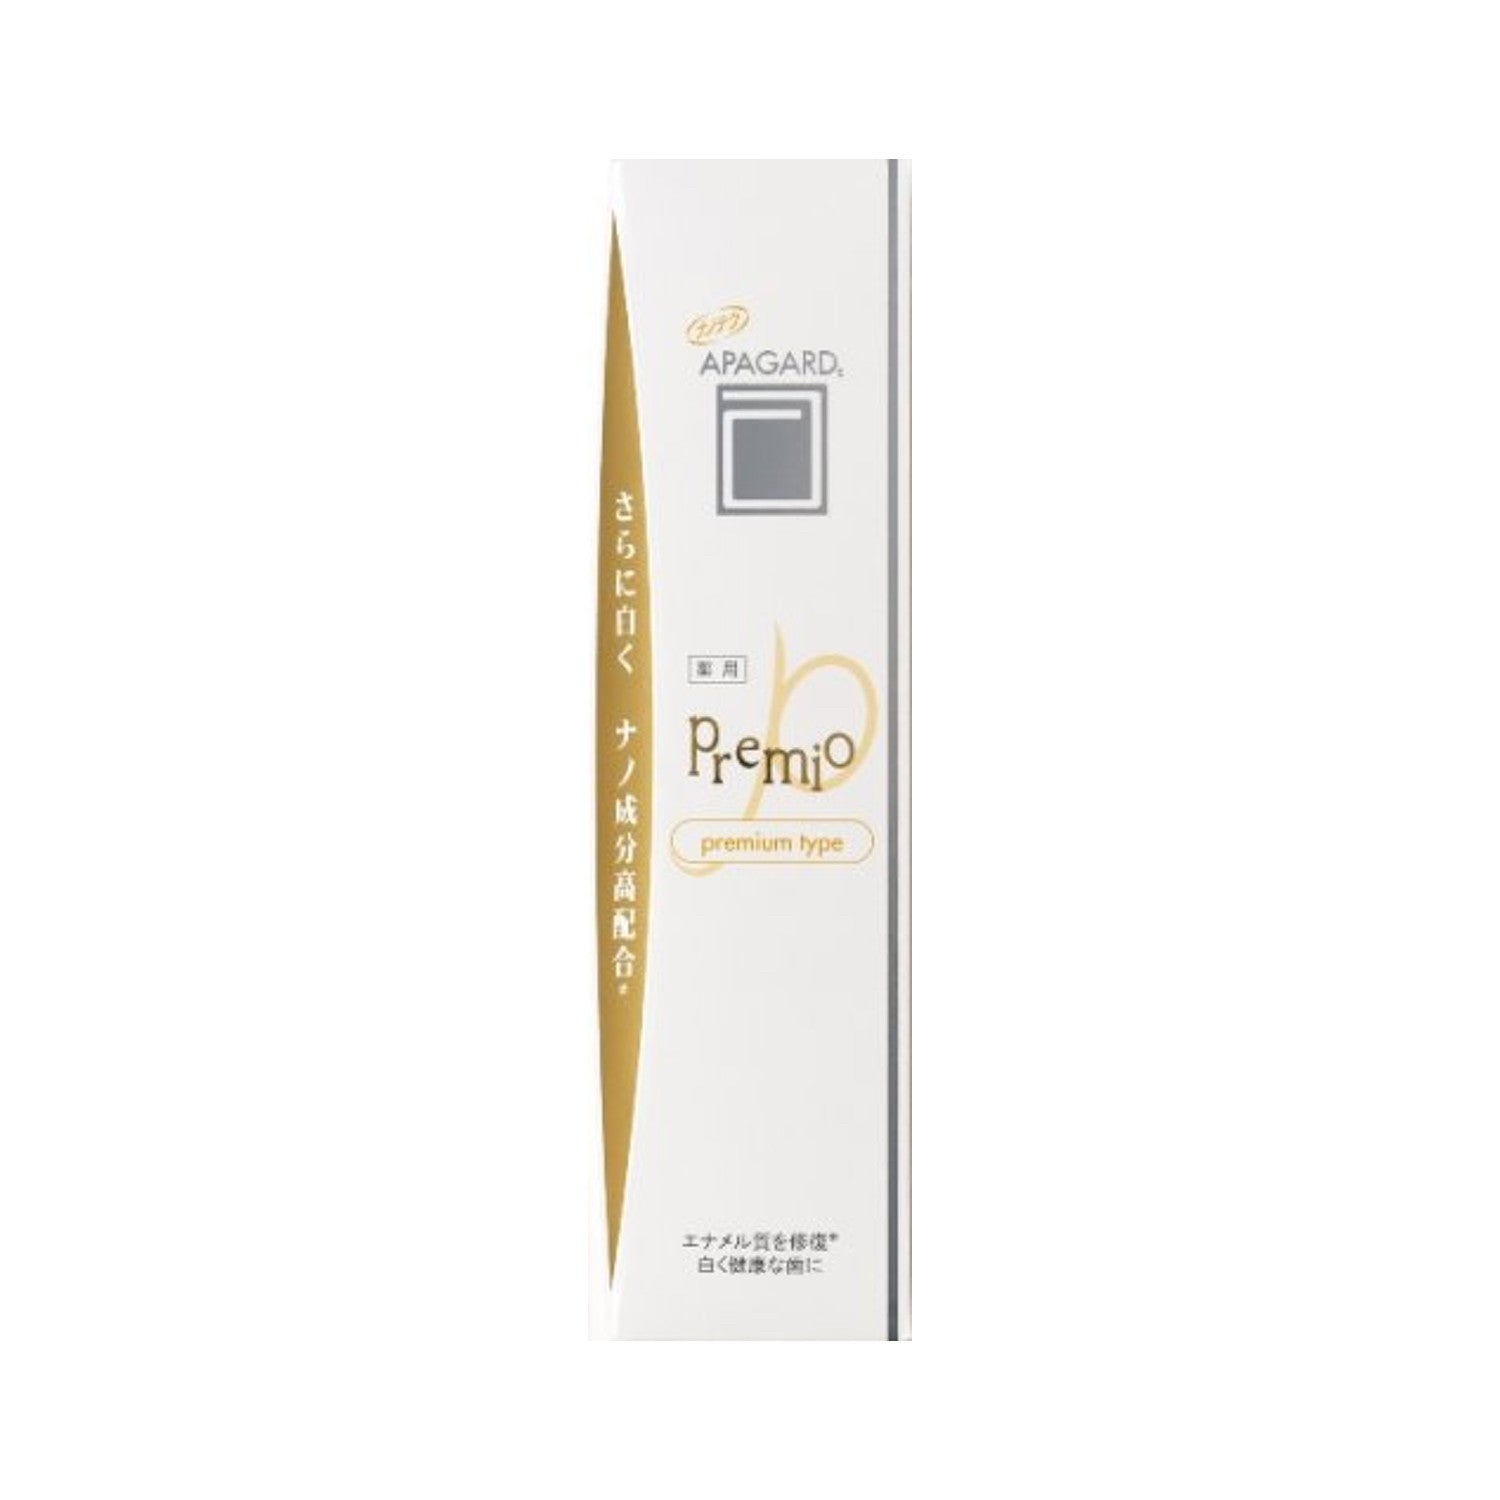 Apagard Premio toothpaste 100g | the first nanohydroxyapatite remineralizing toothpaste